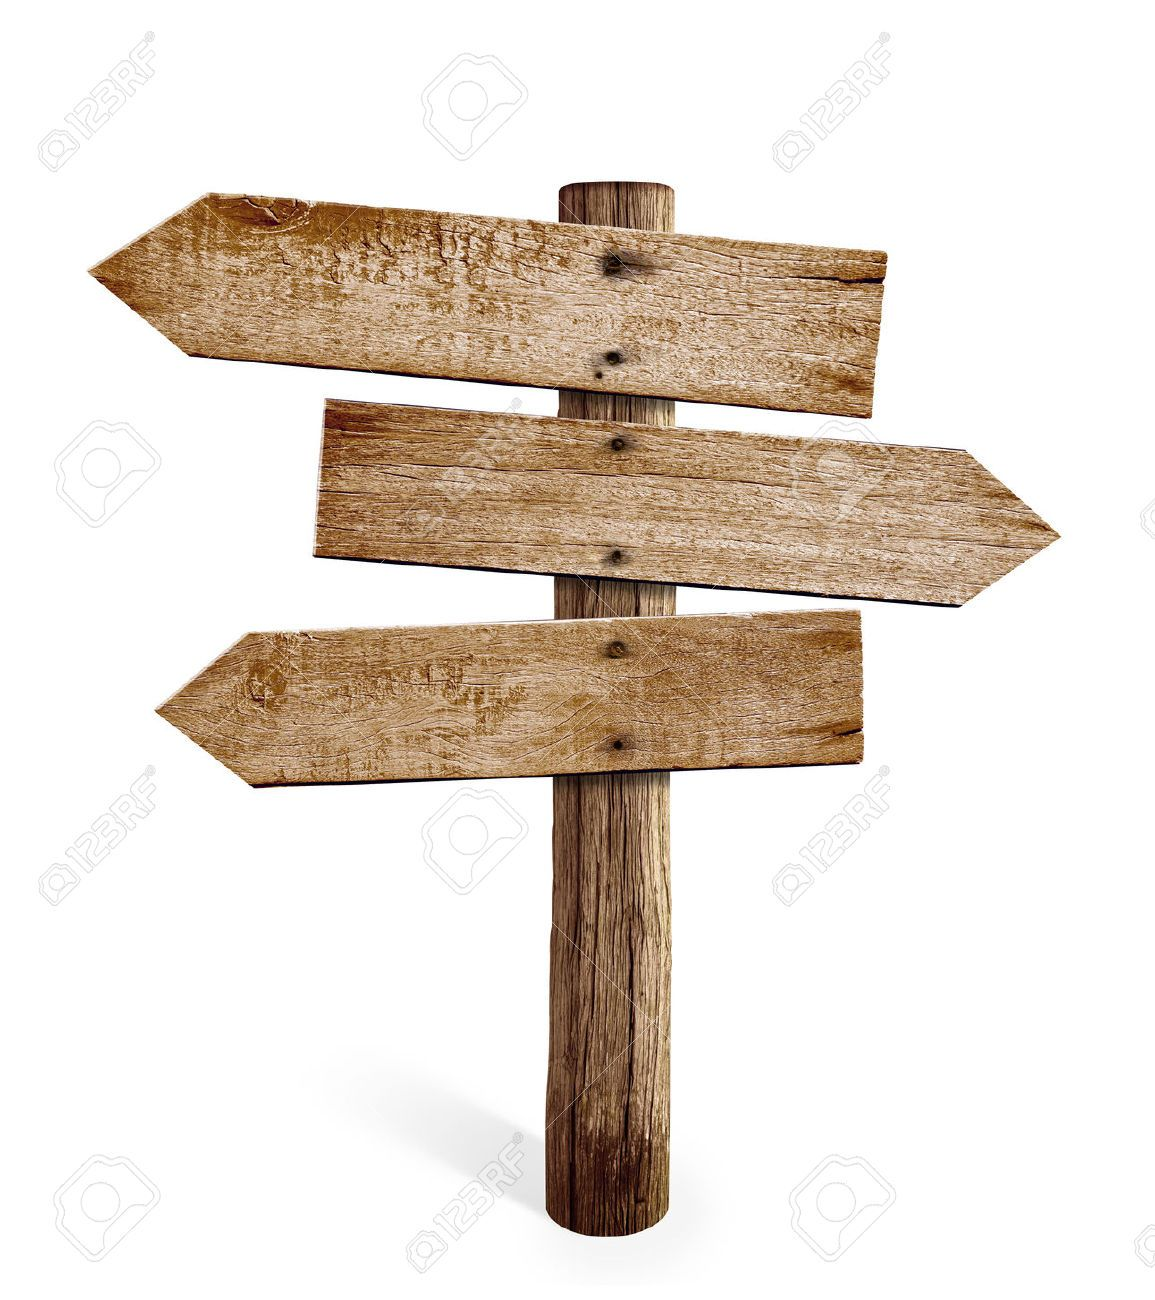 Stock Photo Wooden Arrow Sign Wooden Arrows Wooden Sign Posts